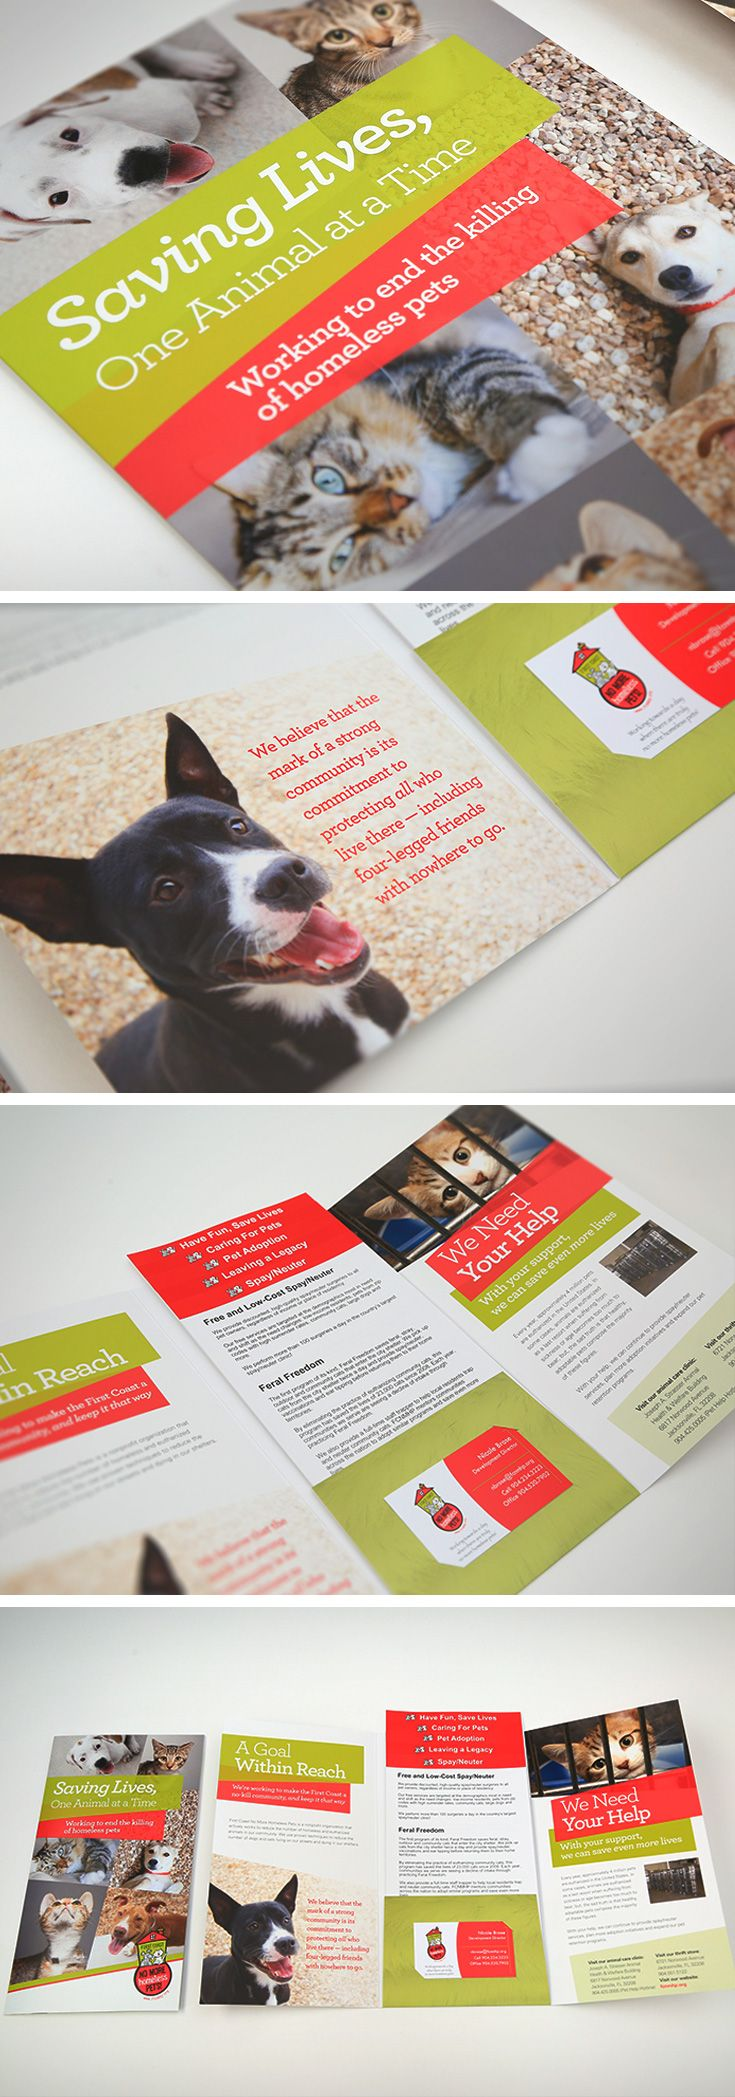 Brochure Design For First Coast No More Homeless Pets Design By